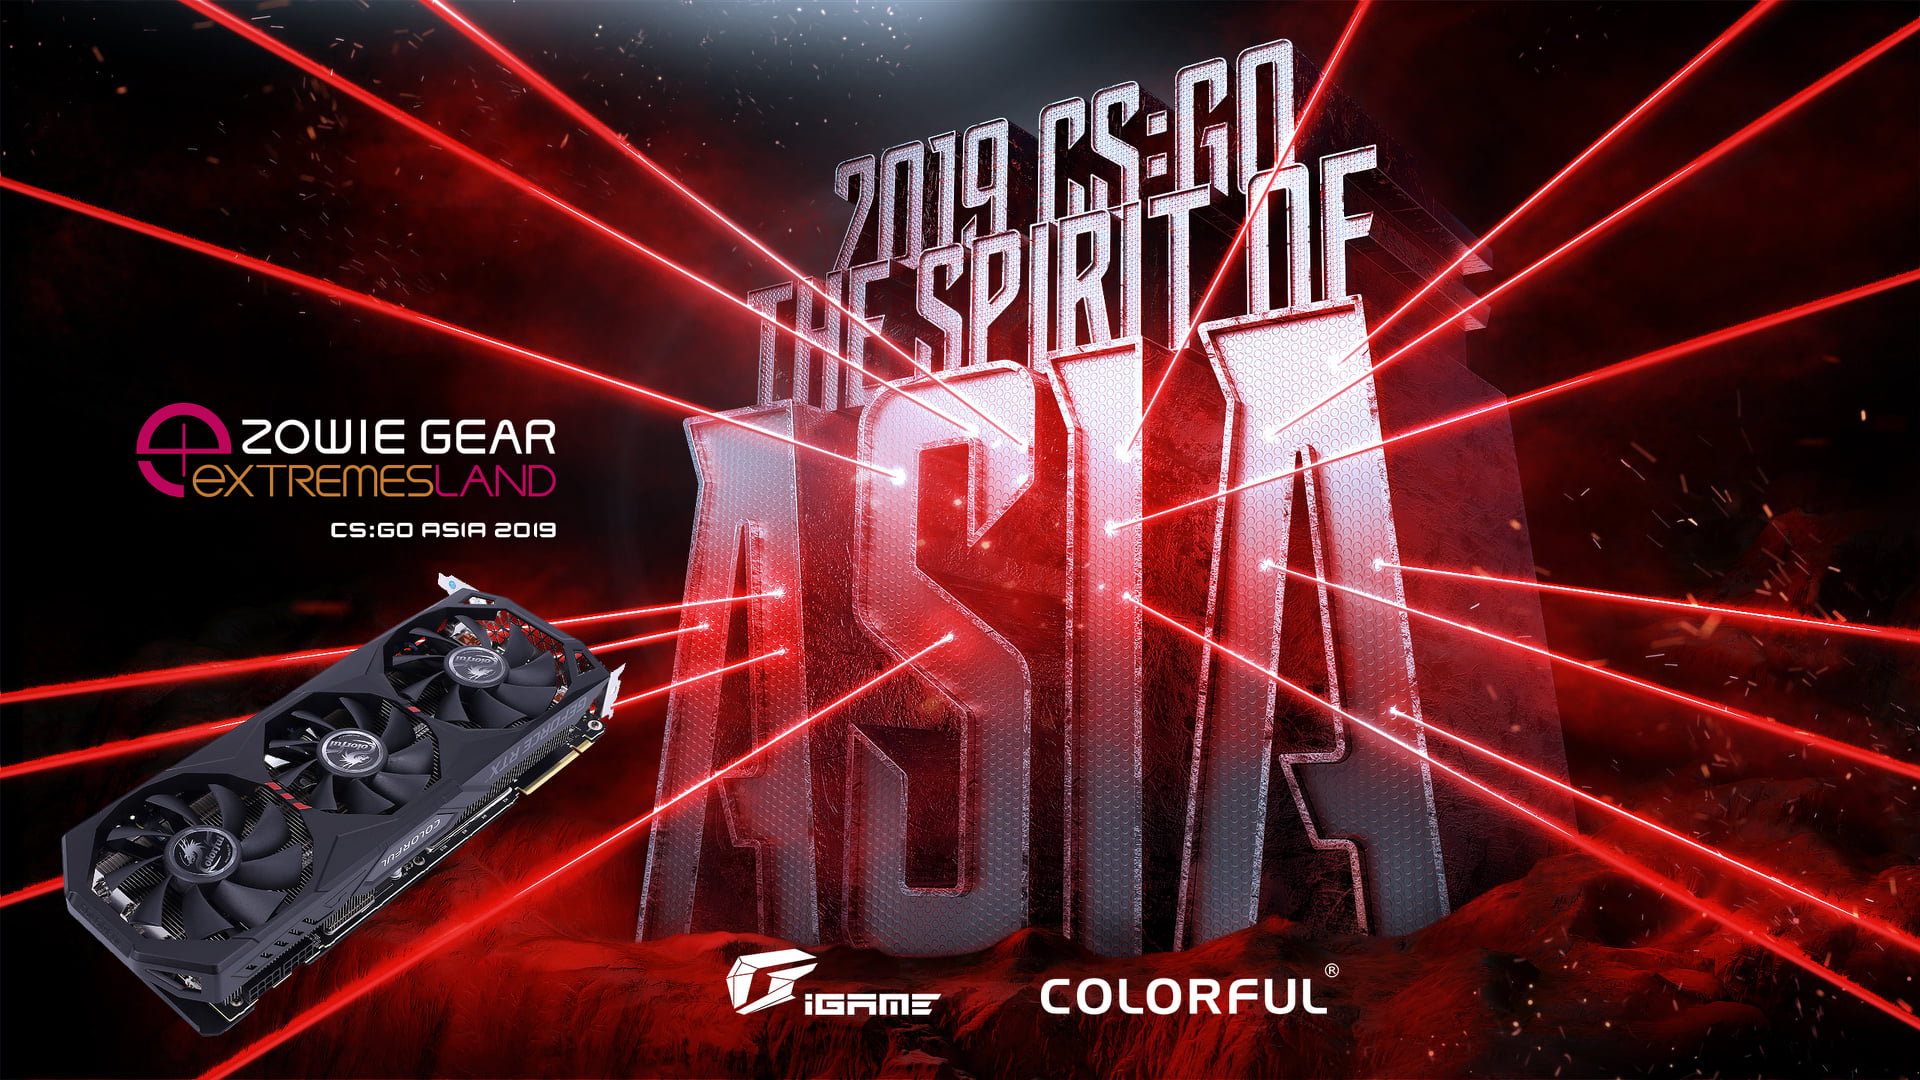 We are honored to sponsor GeForce RTX 2070 SUPER for #CSGOASIA2019! Let's watch the battle for championship this weekend(23rd &24th Nov.). You looking forward to it?